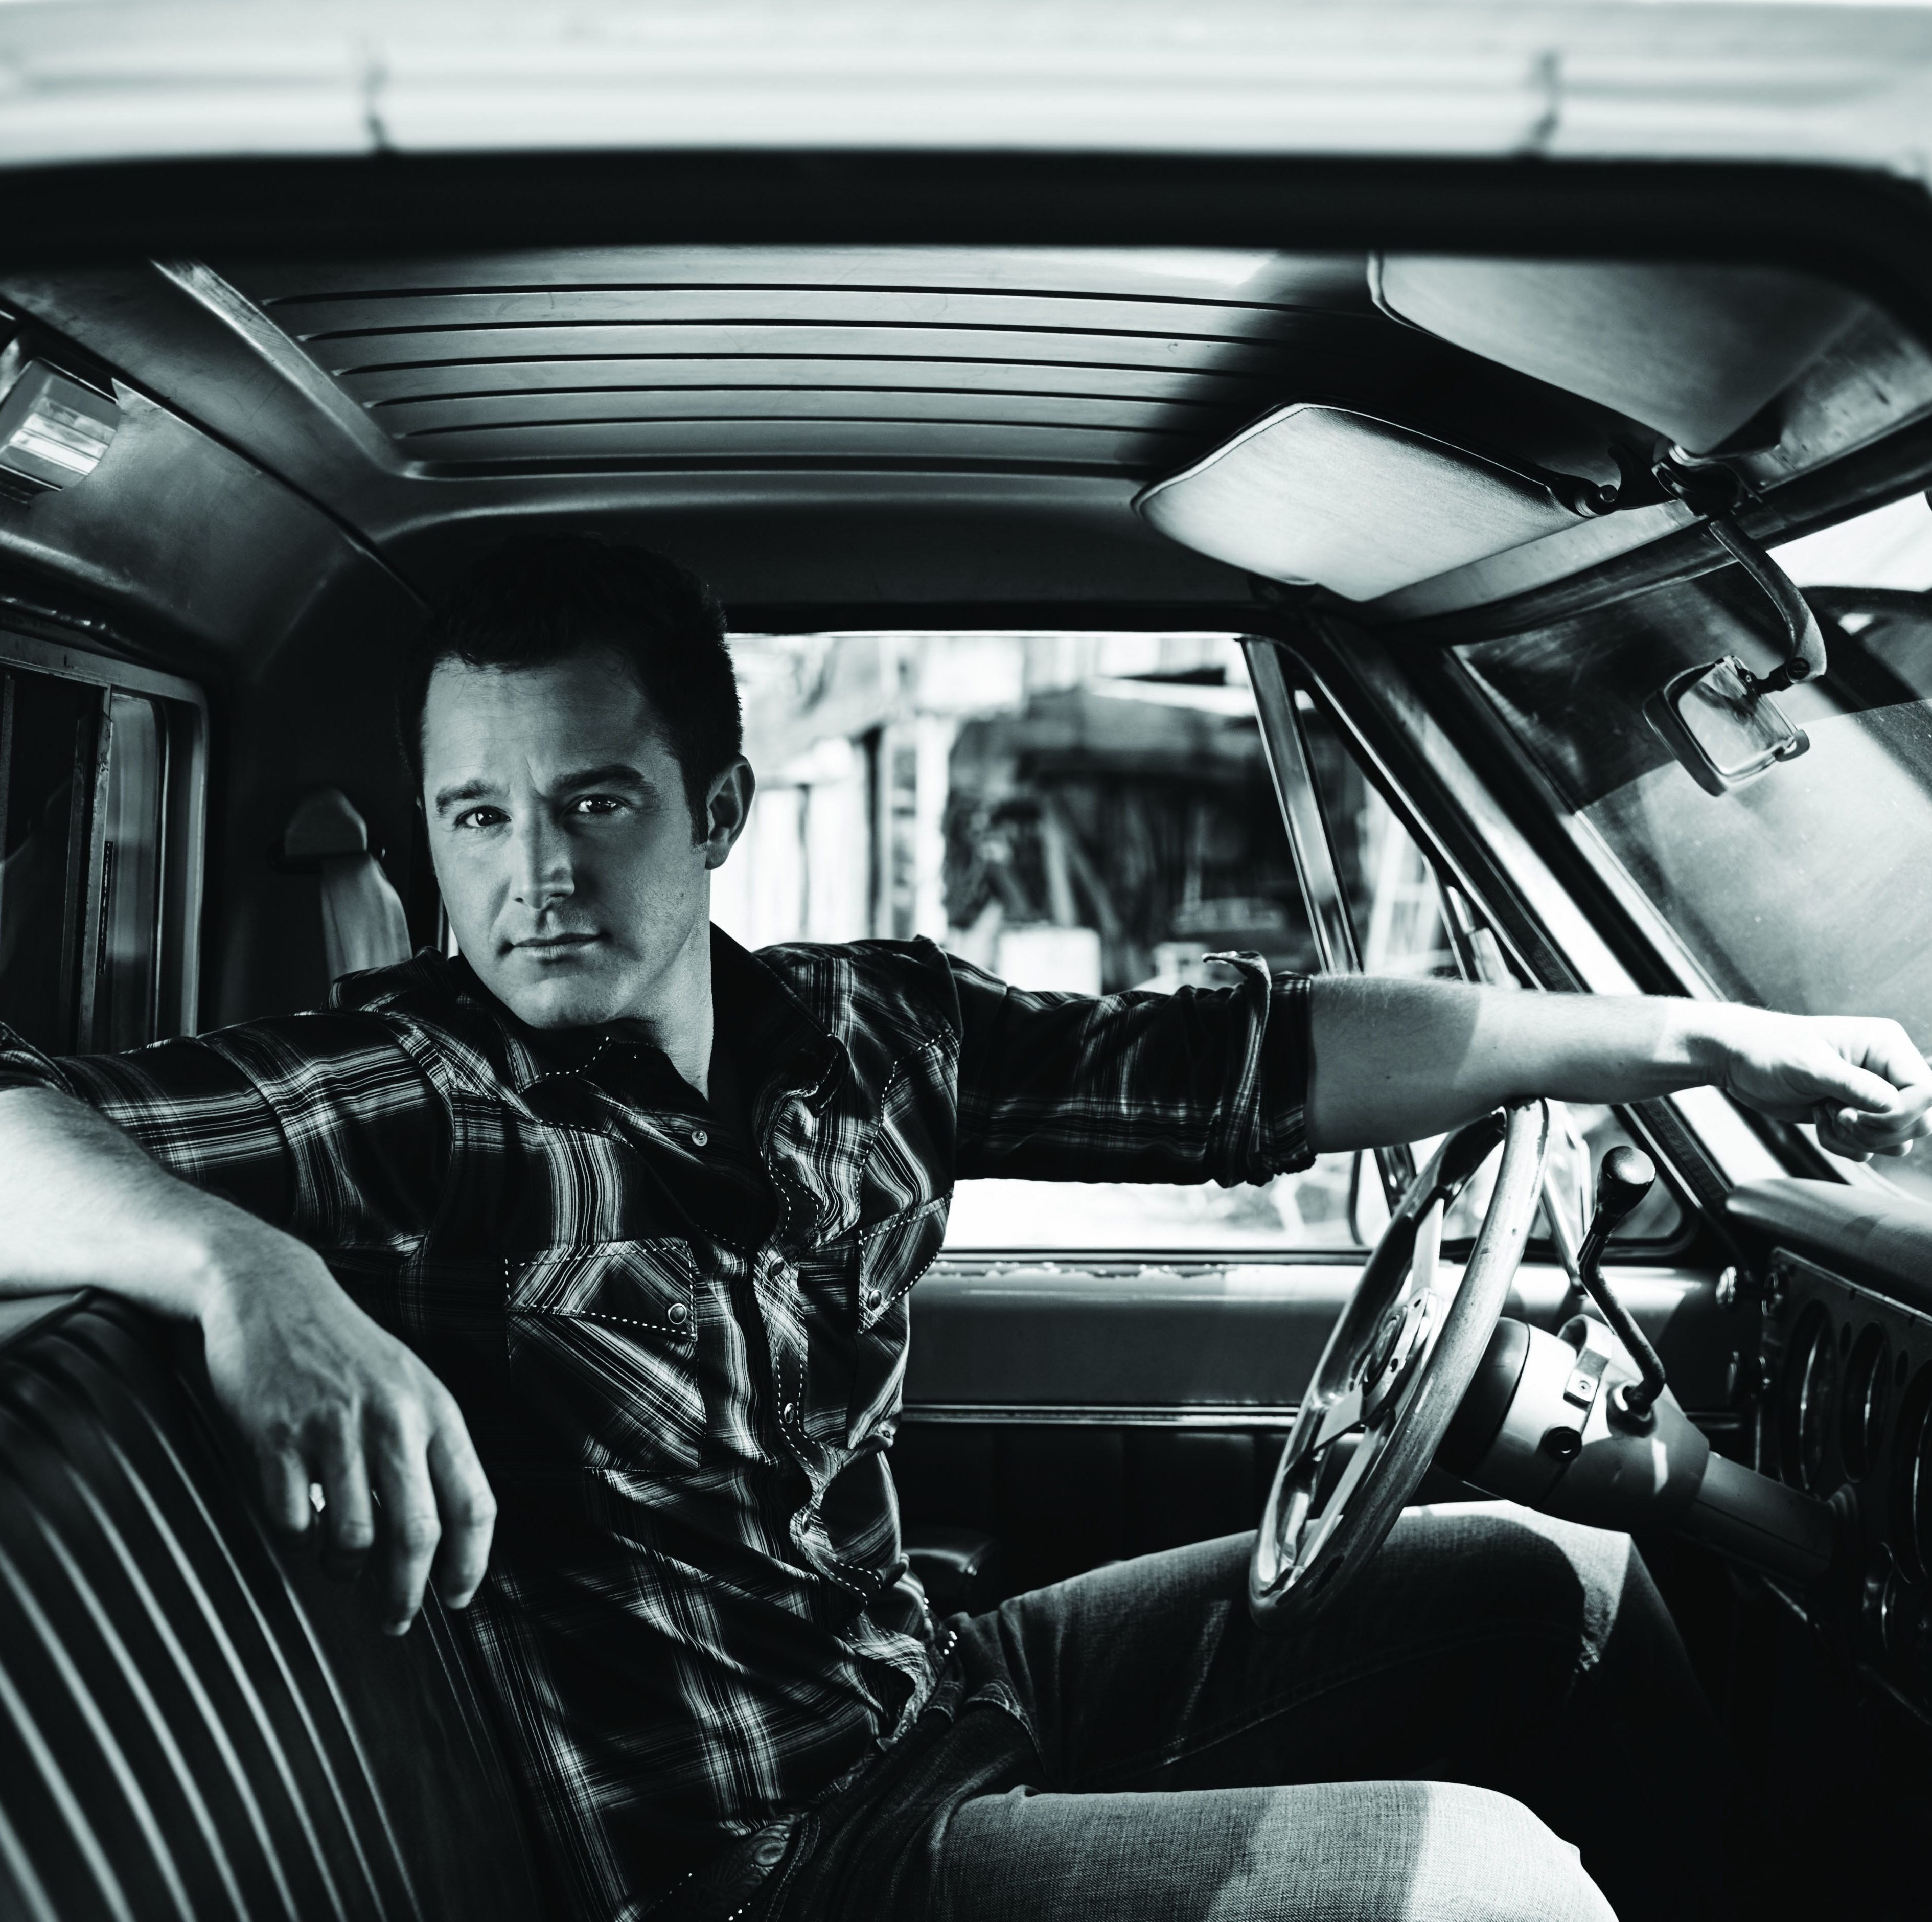 Easton Corbin to perform in Las Cruces; Bataan marchers can get in free